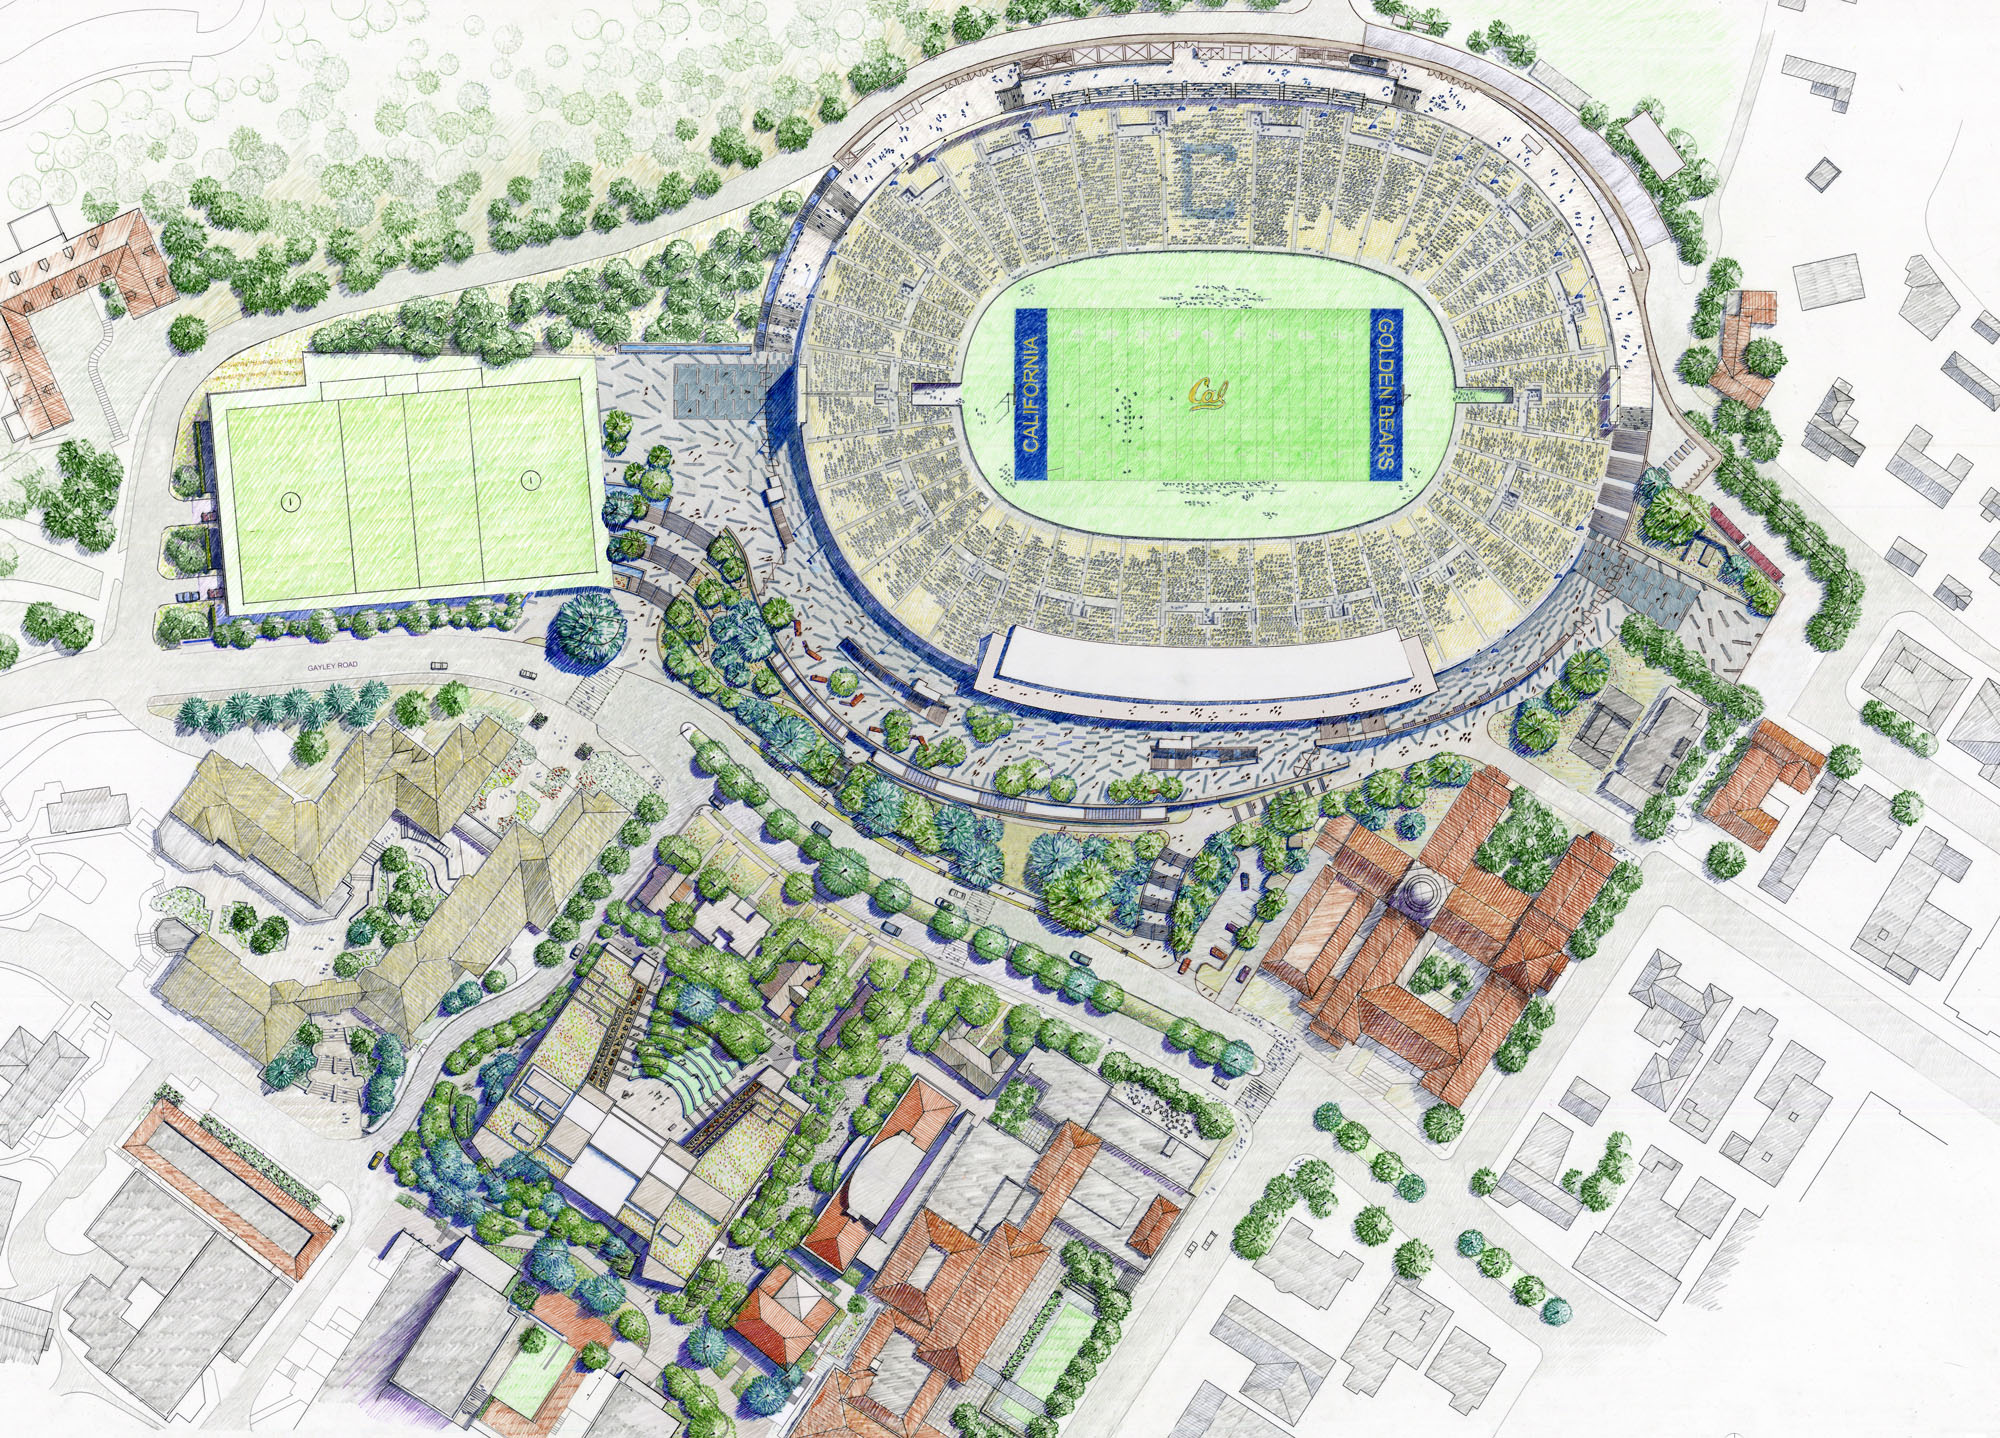 Uc berkeley eir on southeast campus projects released Site plan design